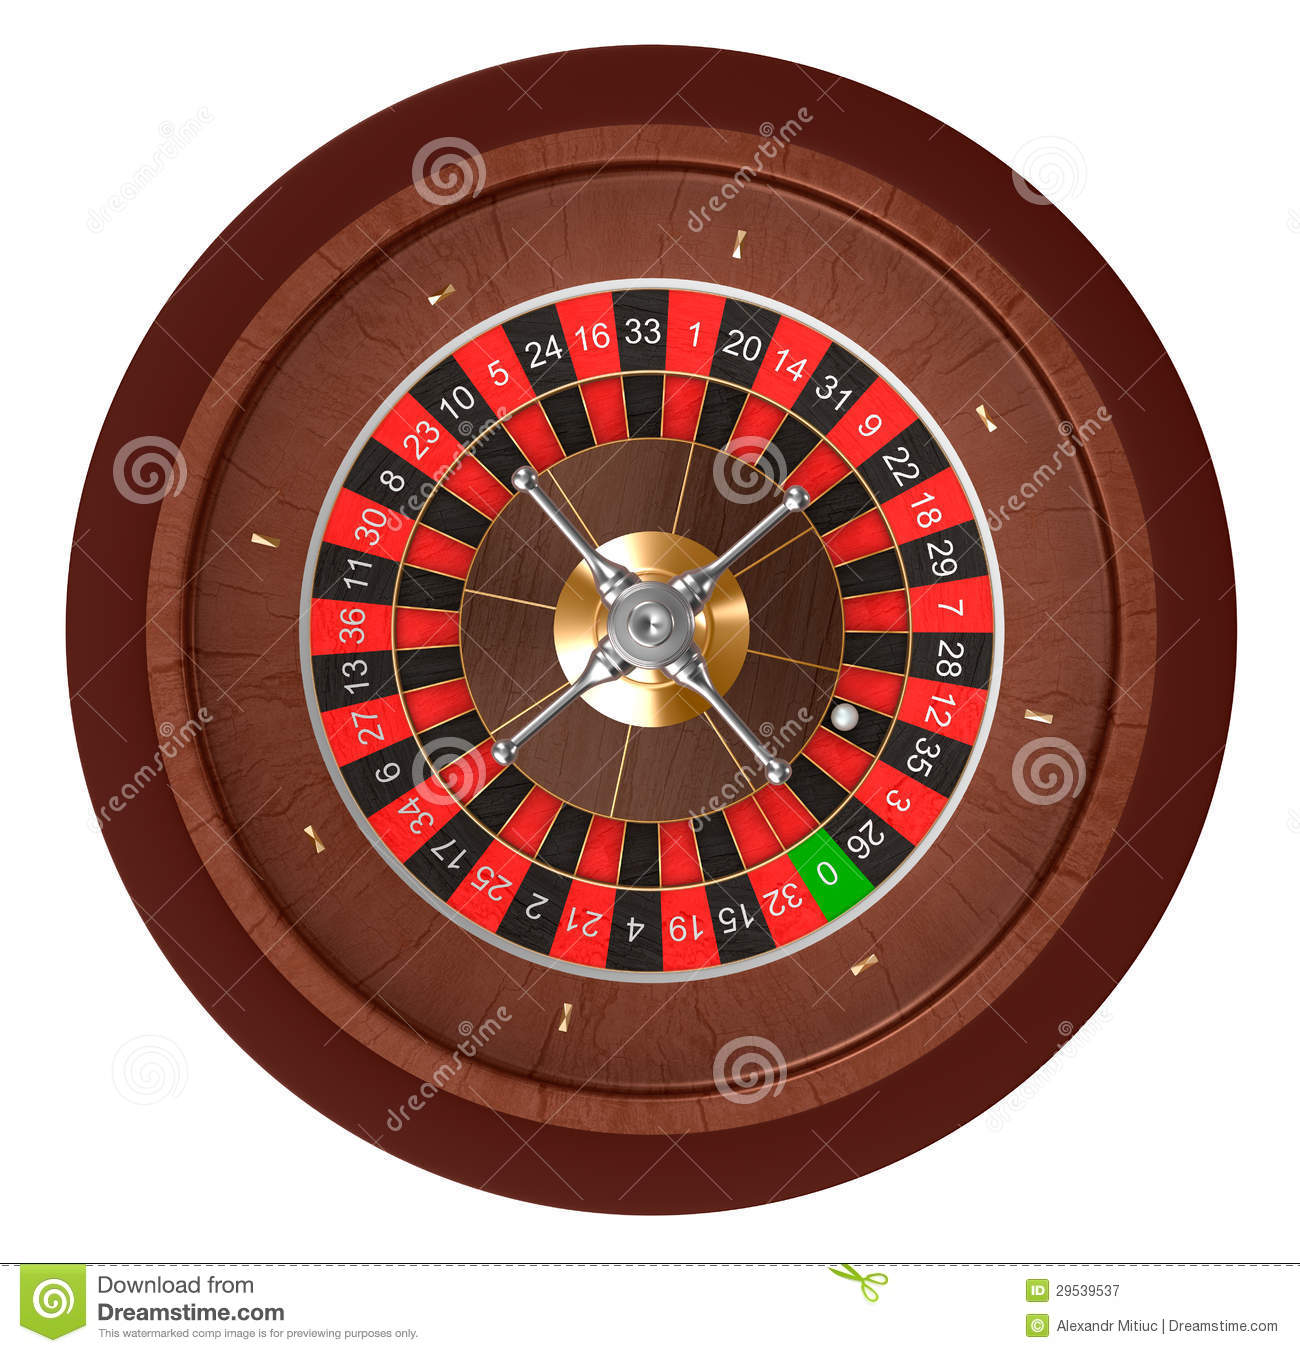 Find the Best Online Roulette Site